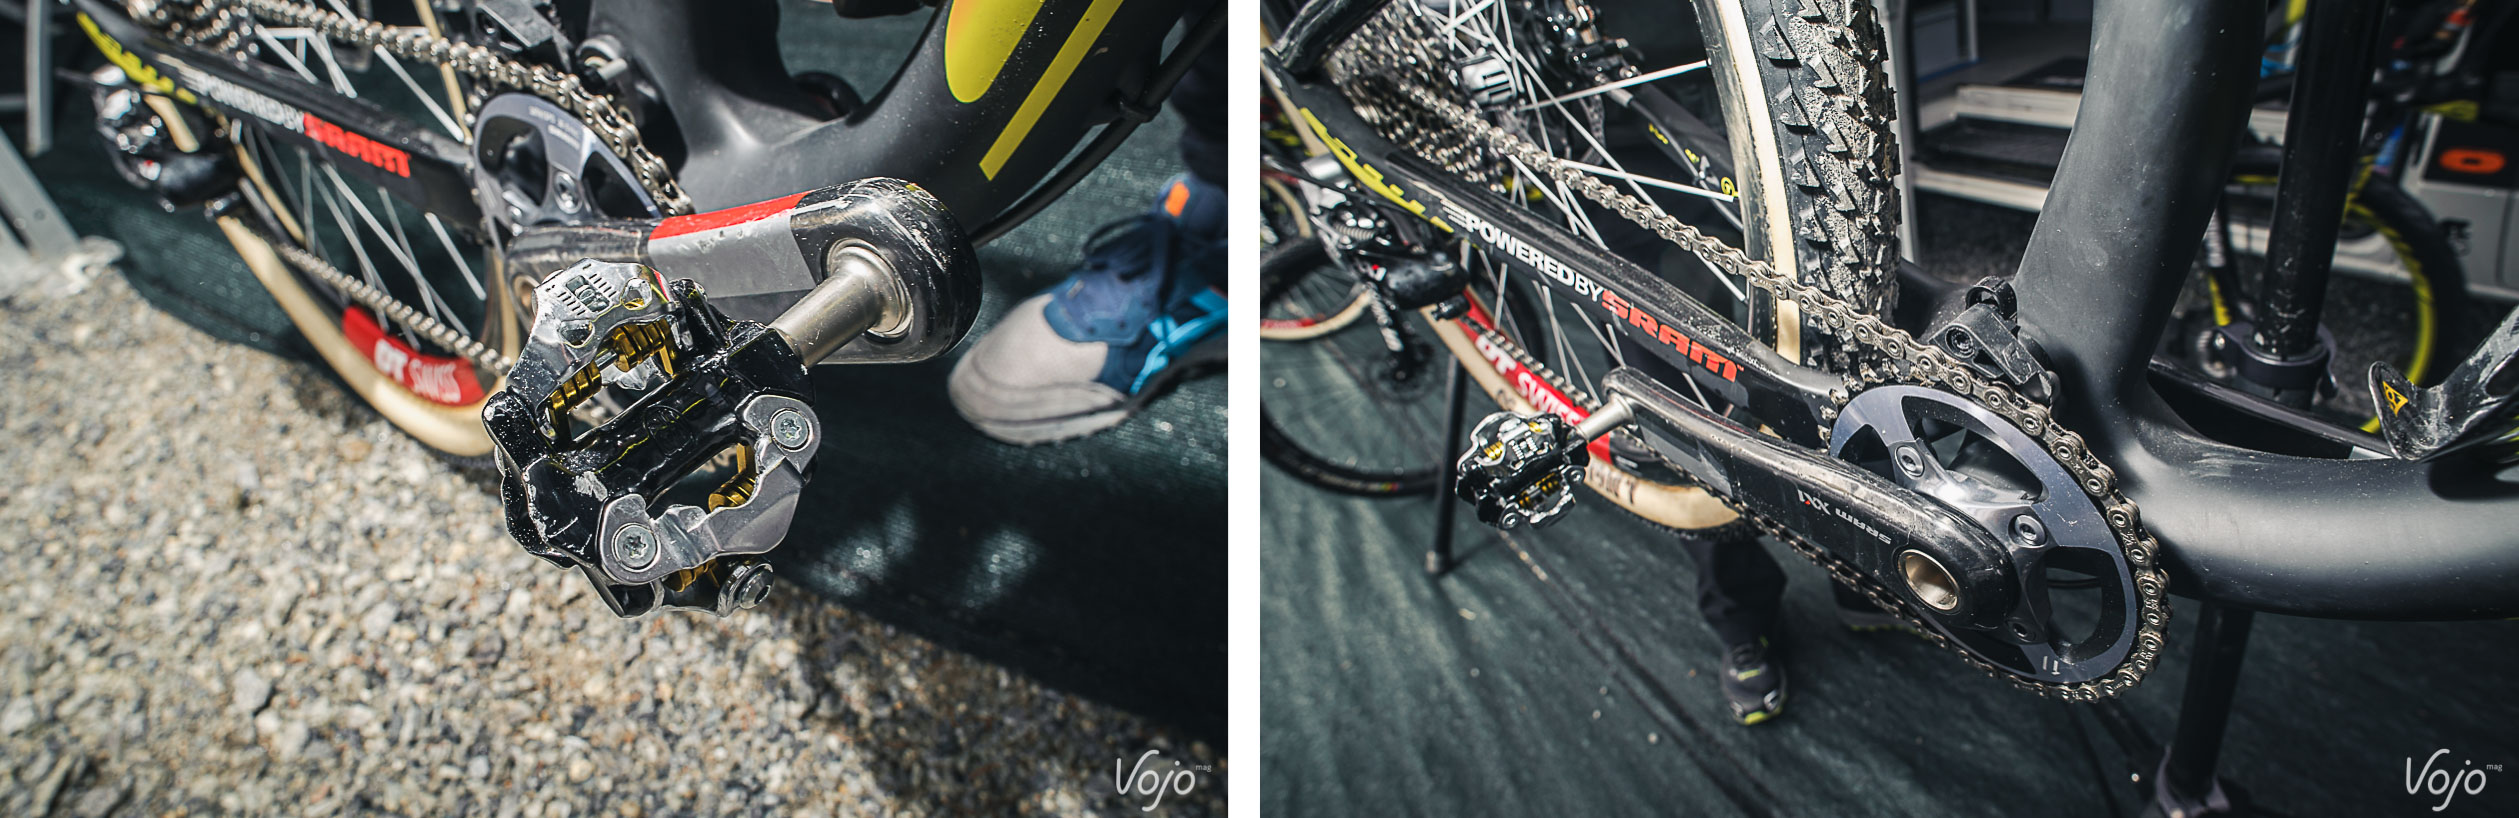 2-World_Cup_MTB_Pro_Bike_Check_Scott_Spark_700_Nino_Schurter_Copyright_OBeart_VojoMag-1